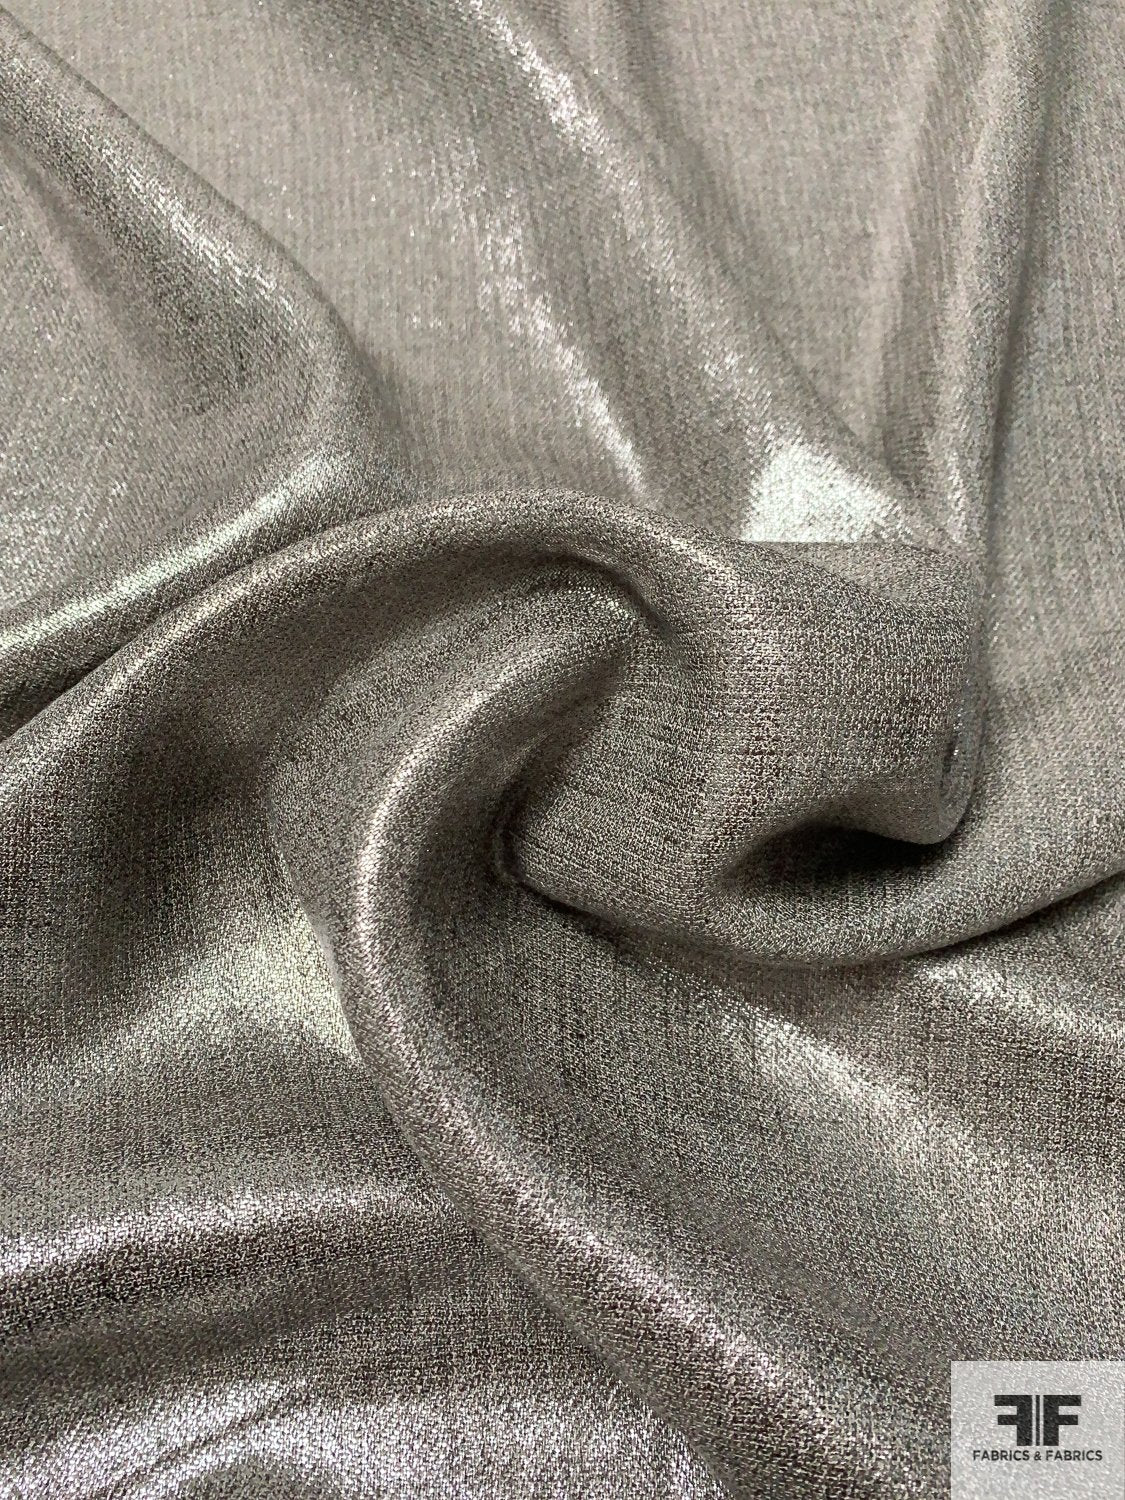 Earth Tone Linen with Metallic Silver Foil Print